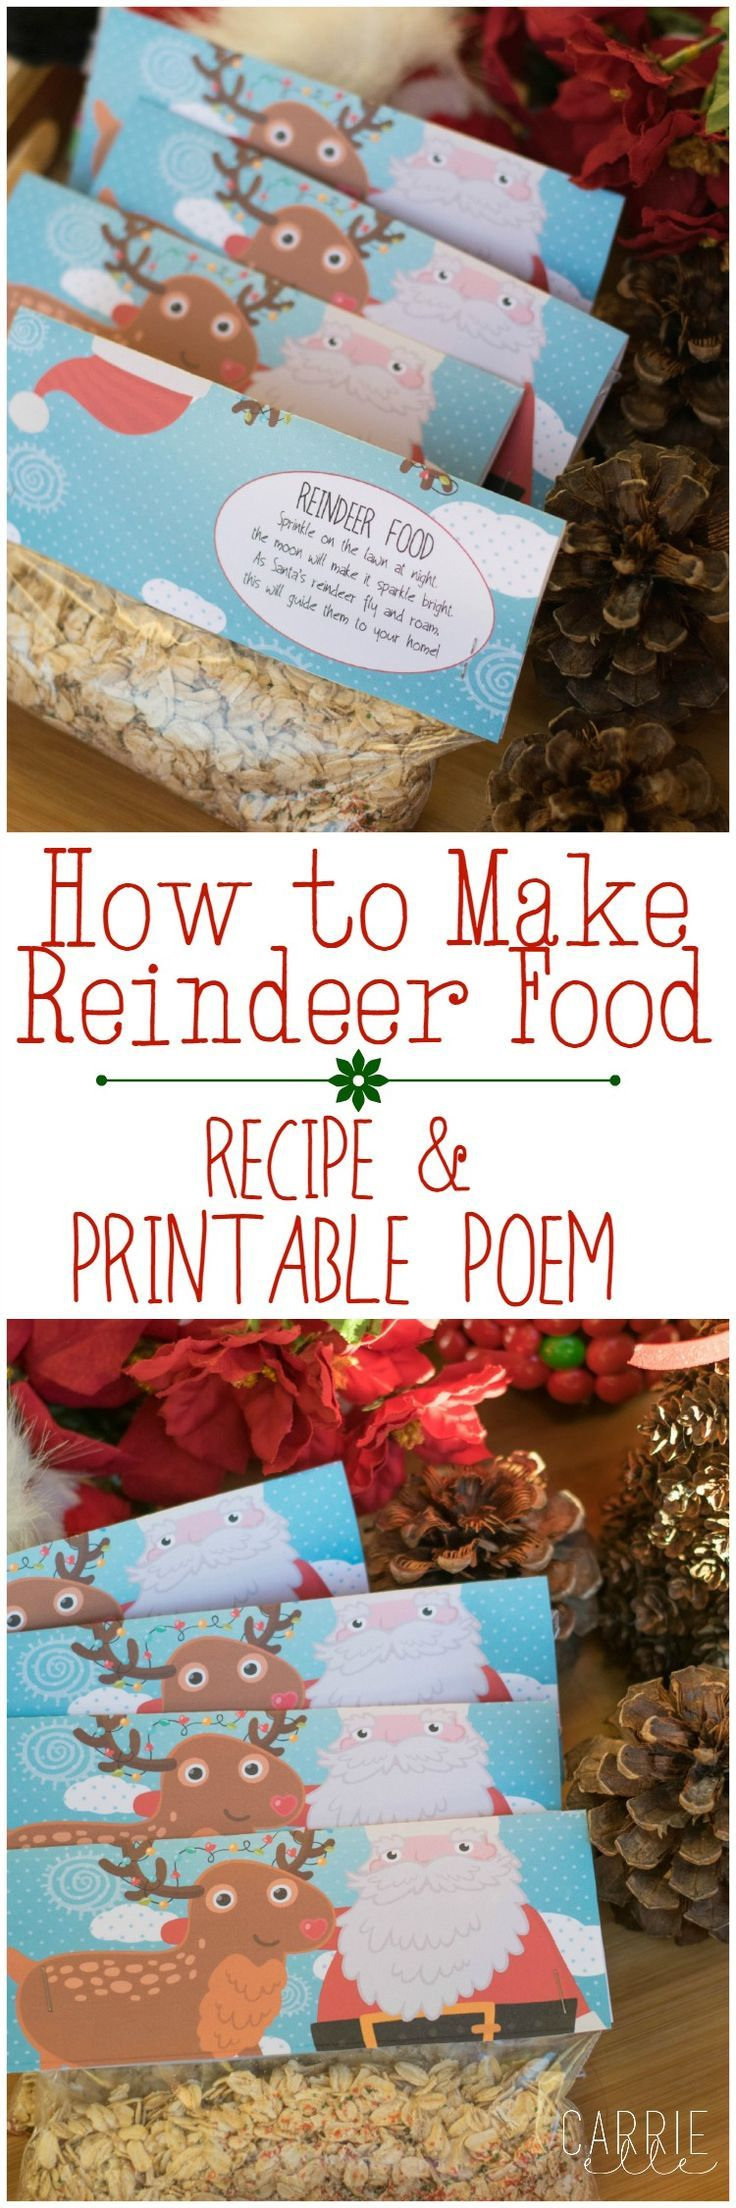 How to make reindeer food (kids love this super simple and magical Christmas tradition!): reindeer food recipe and reindeer food poem printable bag toppers included!